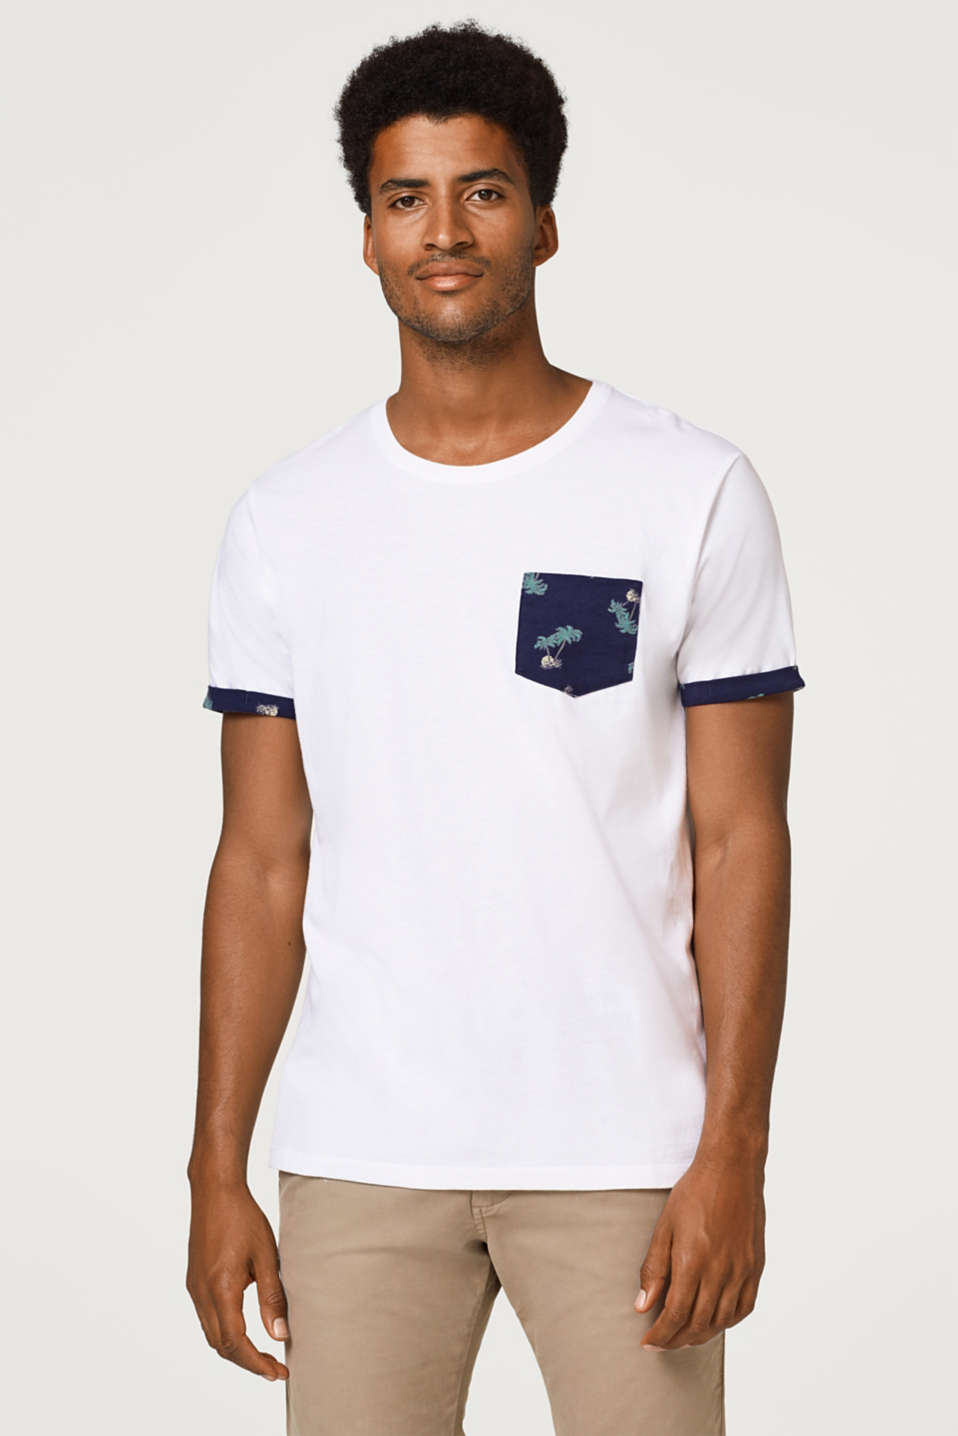 edc - Jersey T-shirt with a striking print, 100% cotton